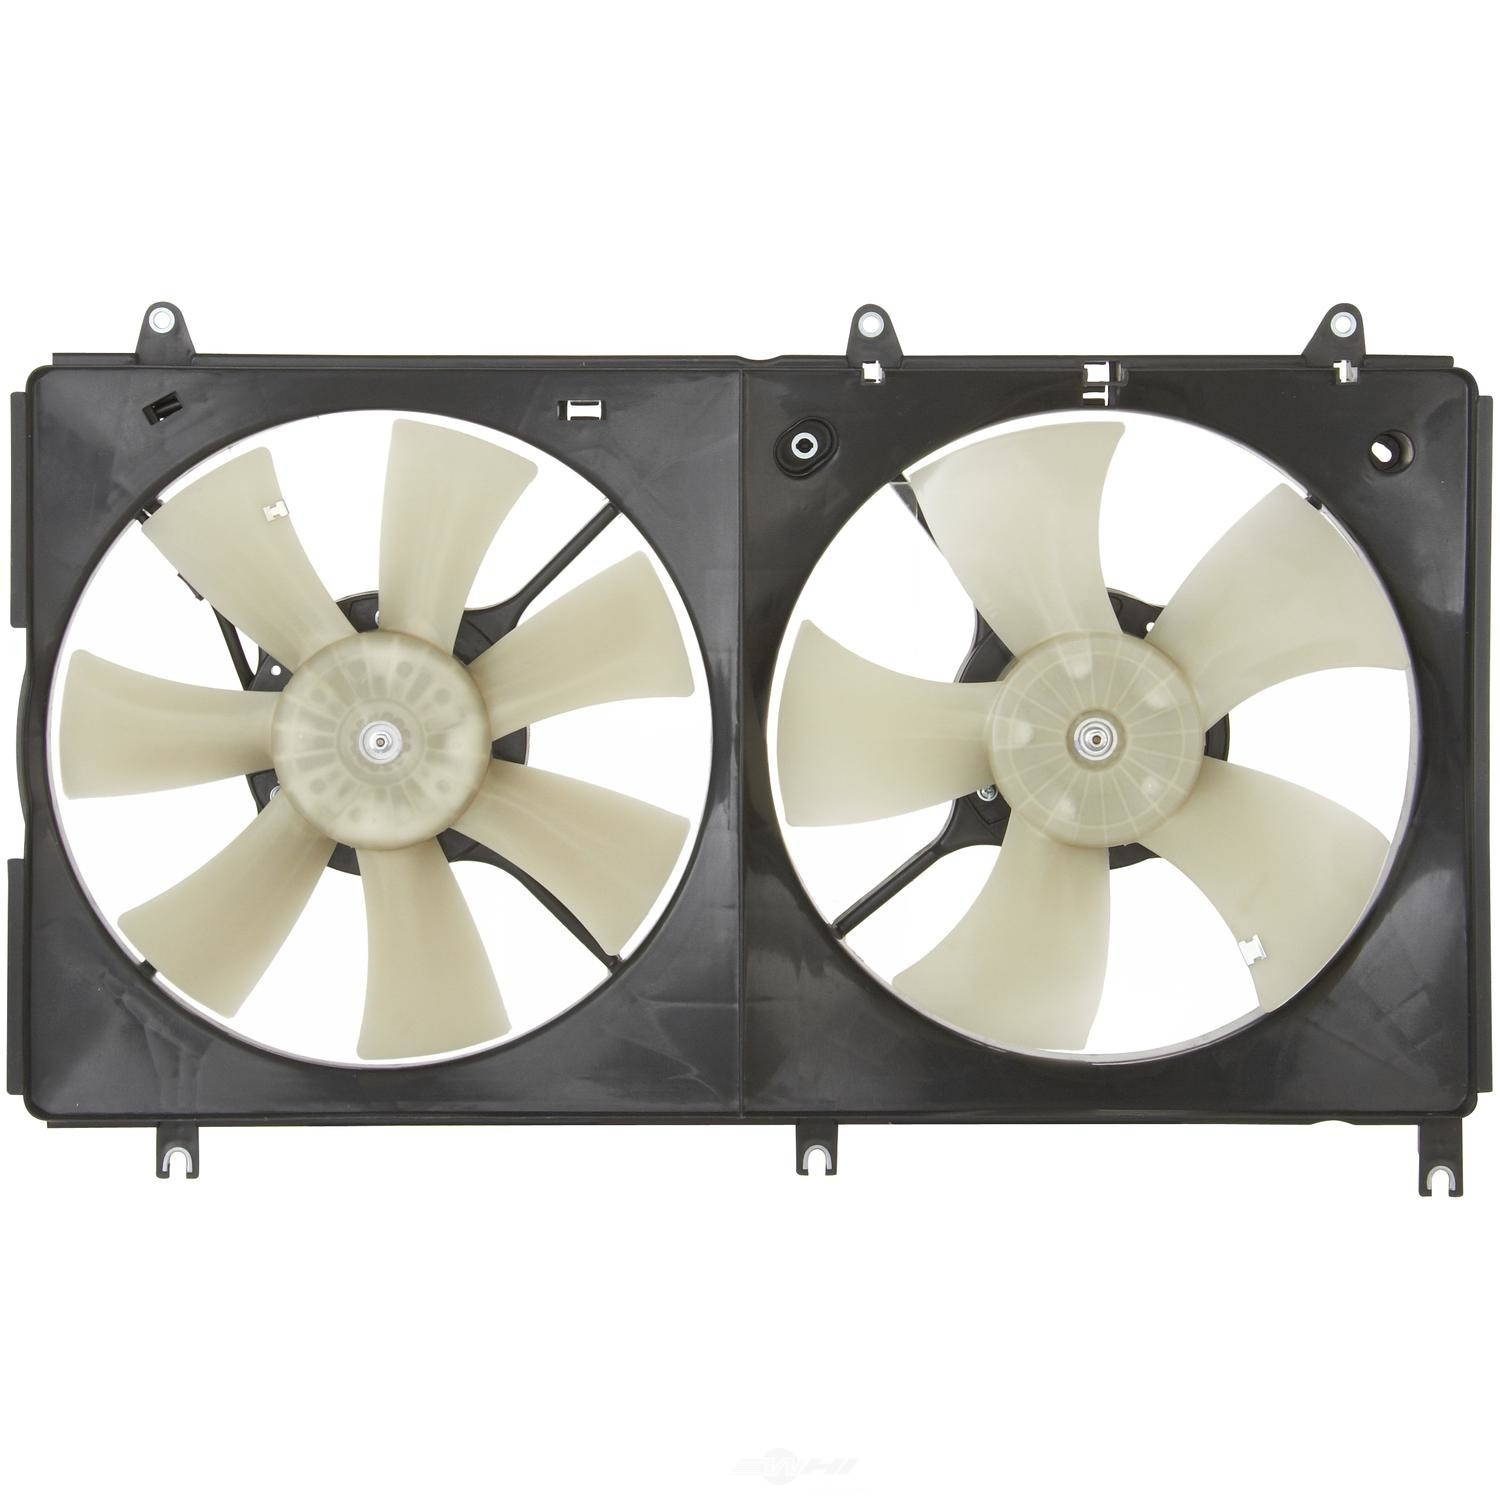 SPECTRA PREMIUM IND, INC. - Dual Radiator and Condenser Fan Assembly - SPC CF22008